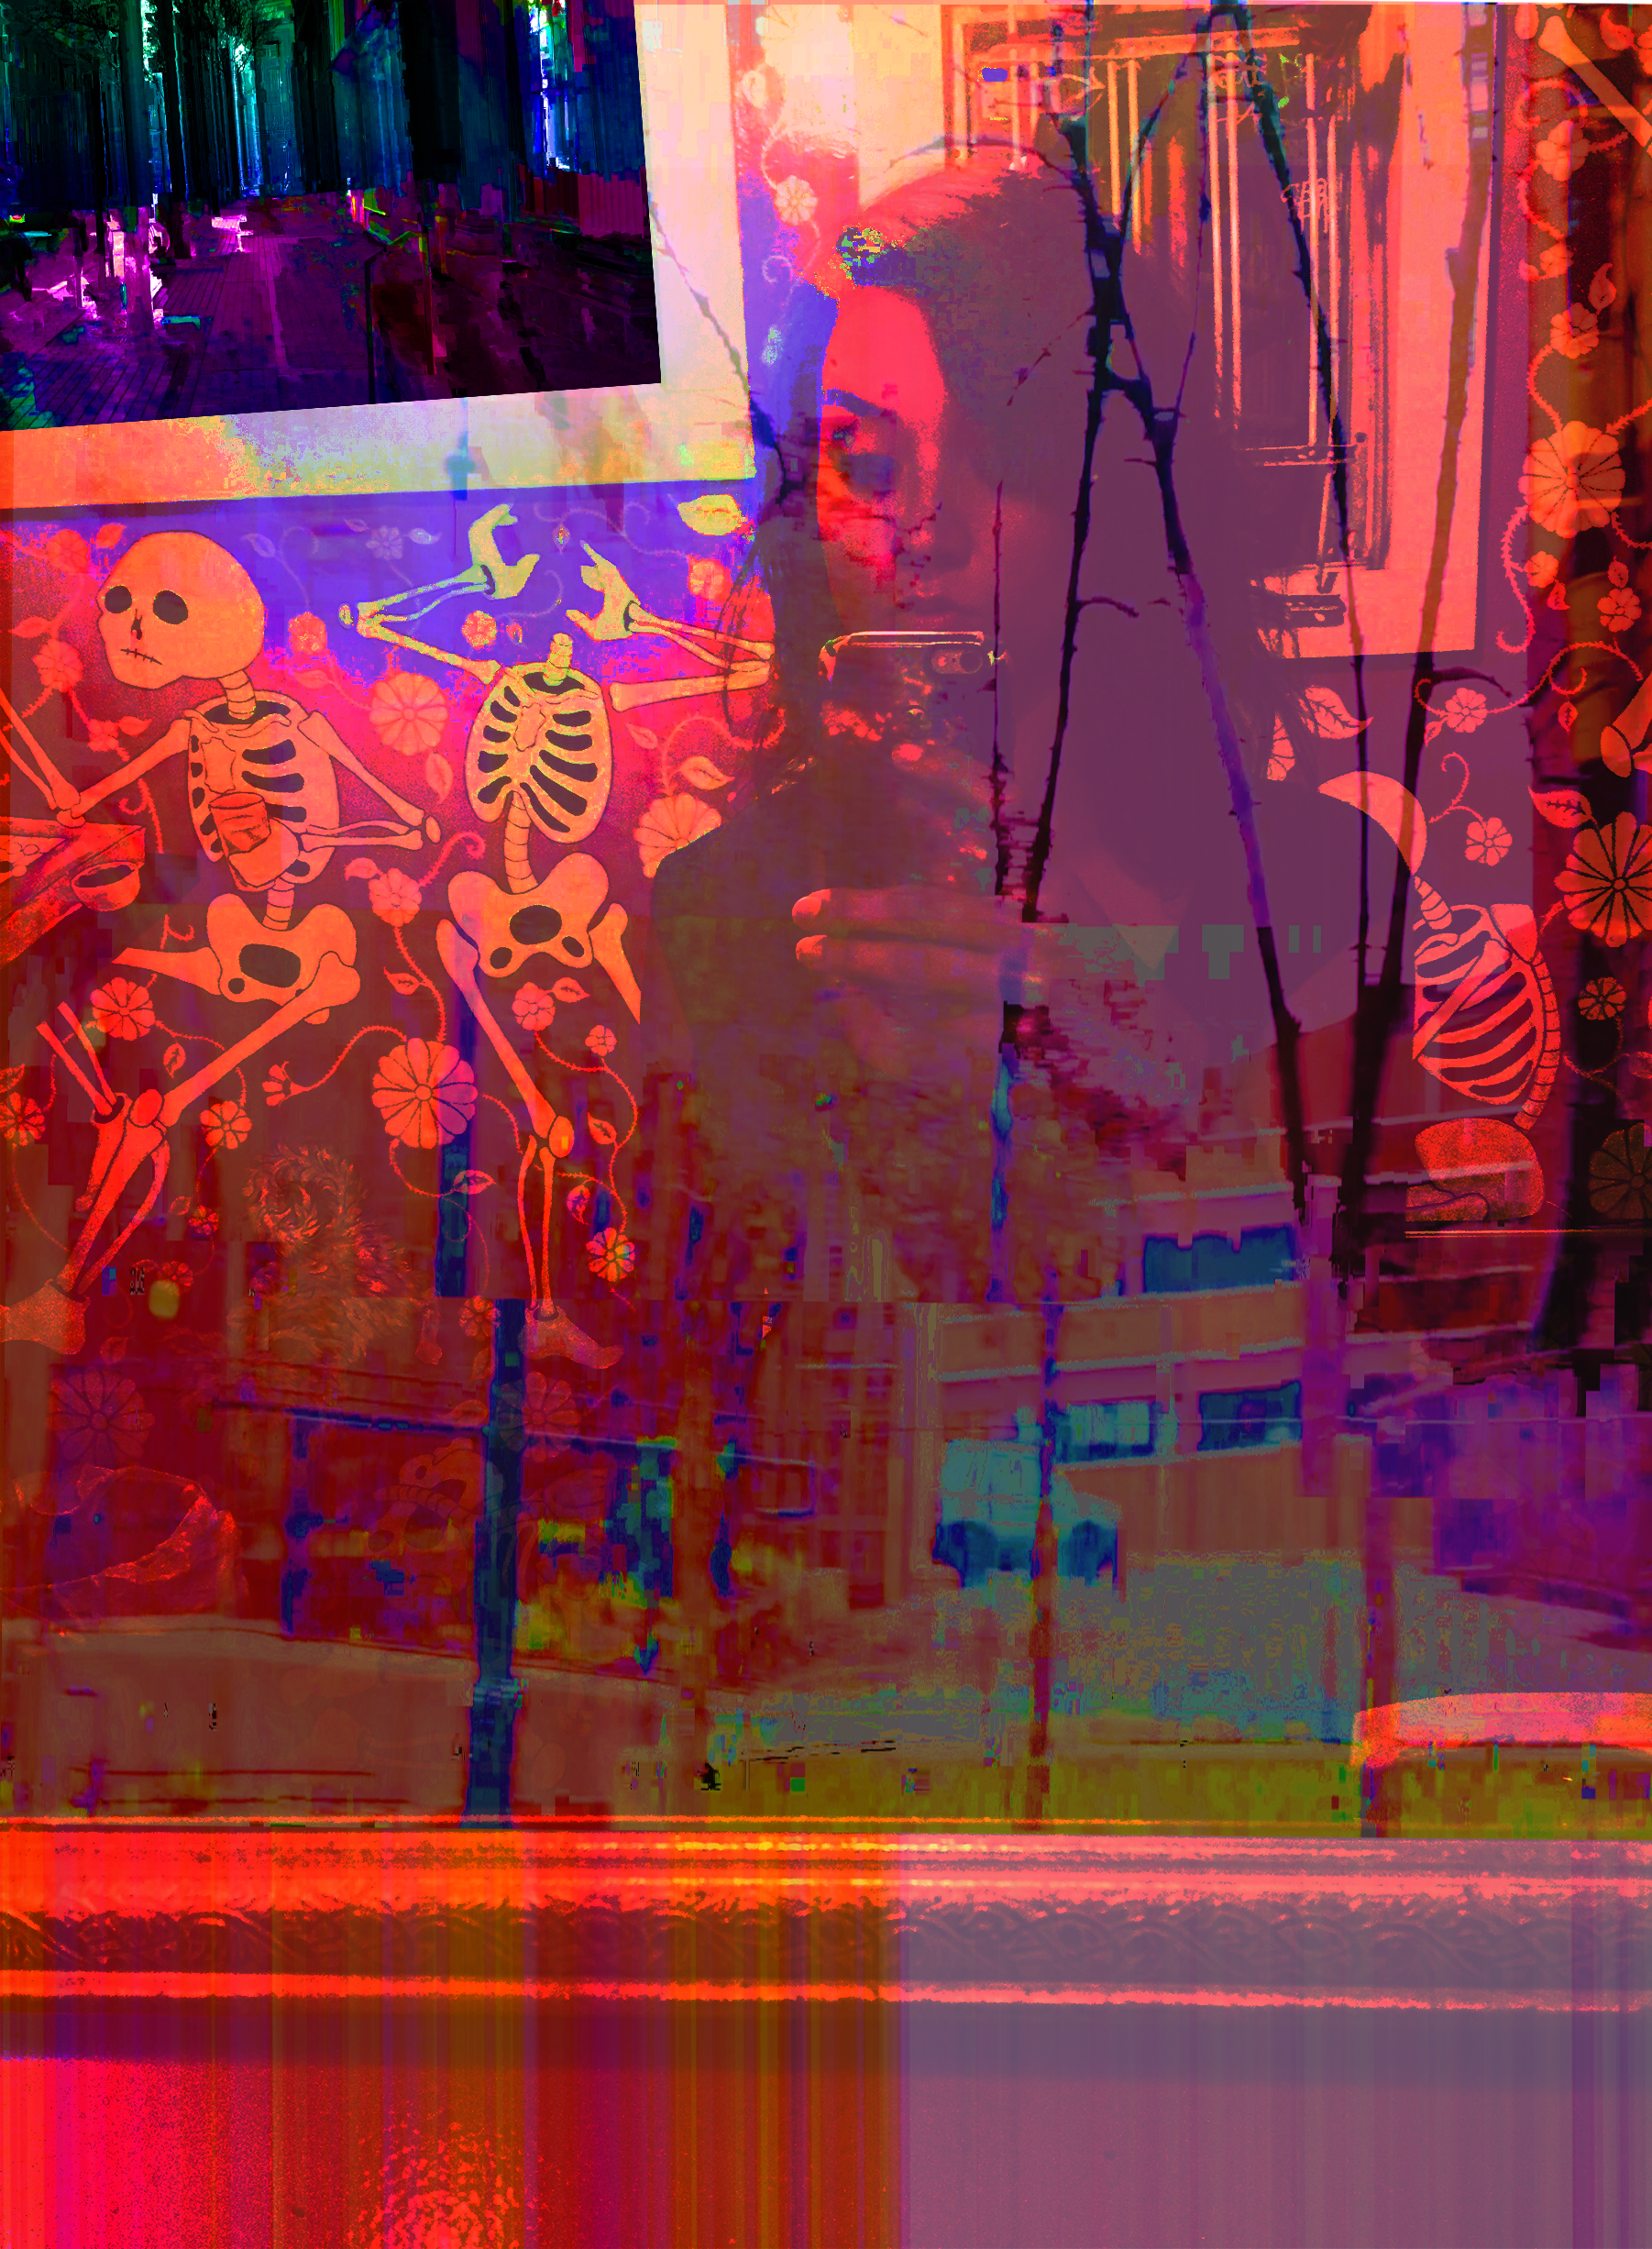 selife_glitch3.png